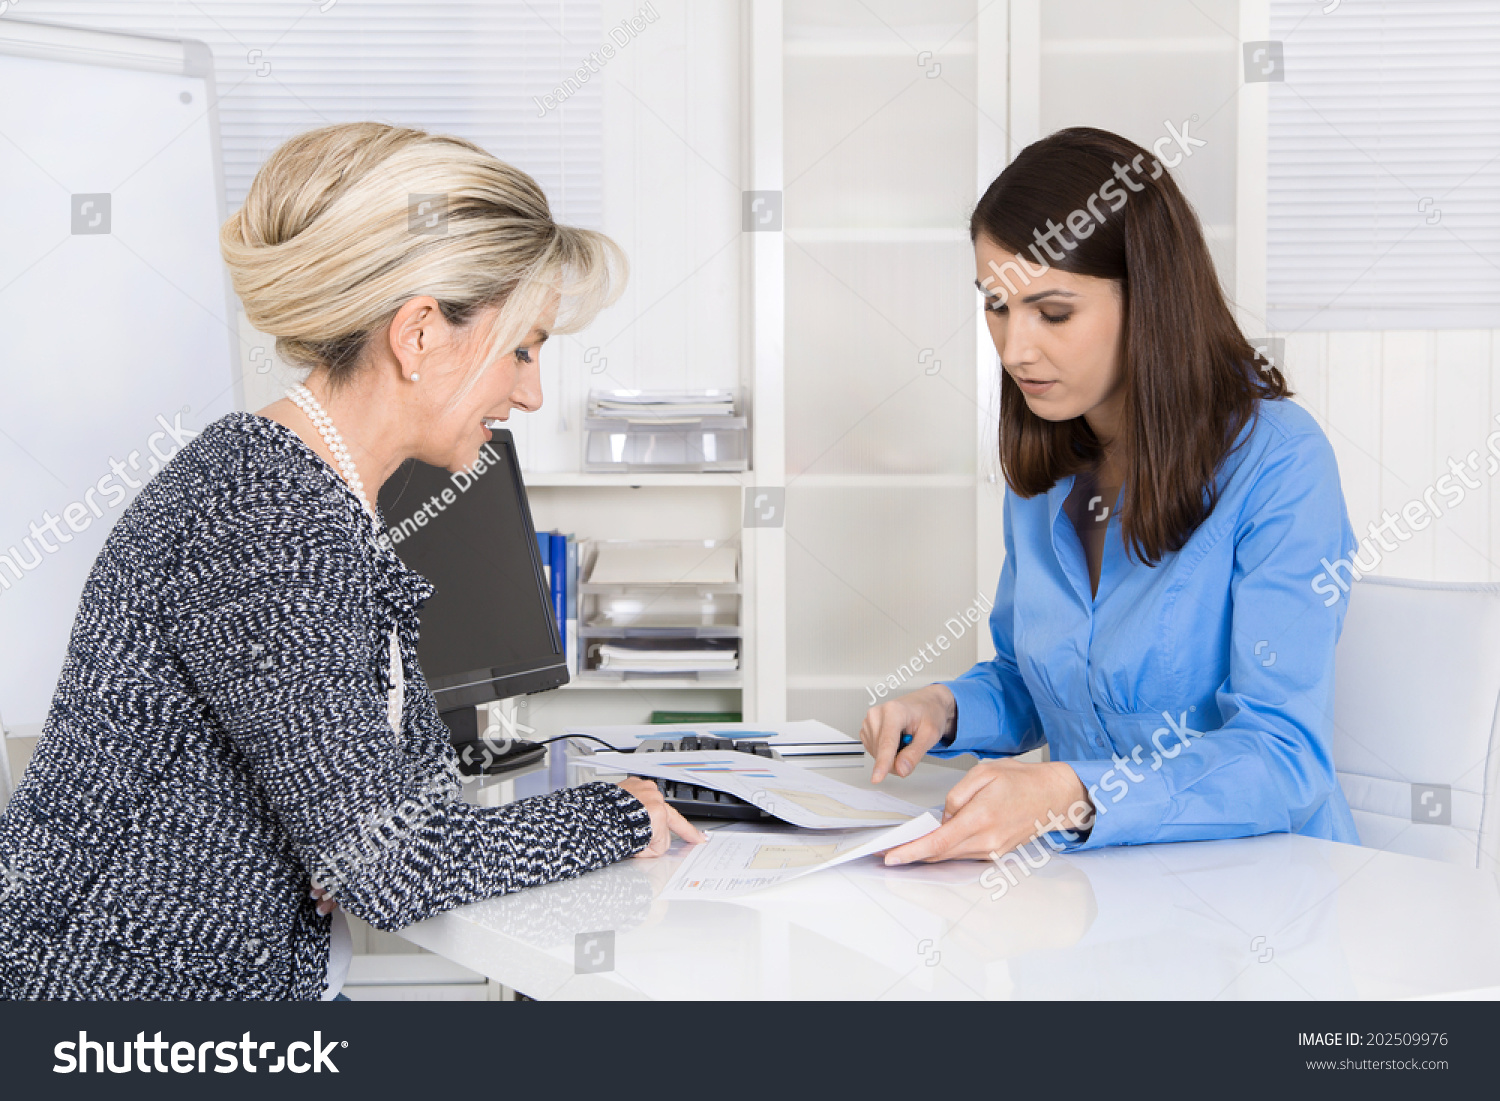 how to become a gender specialist jobs